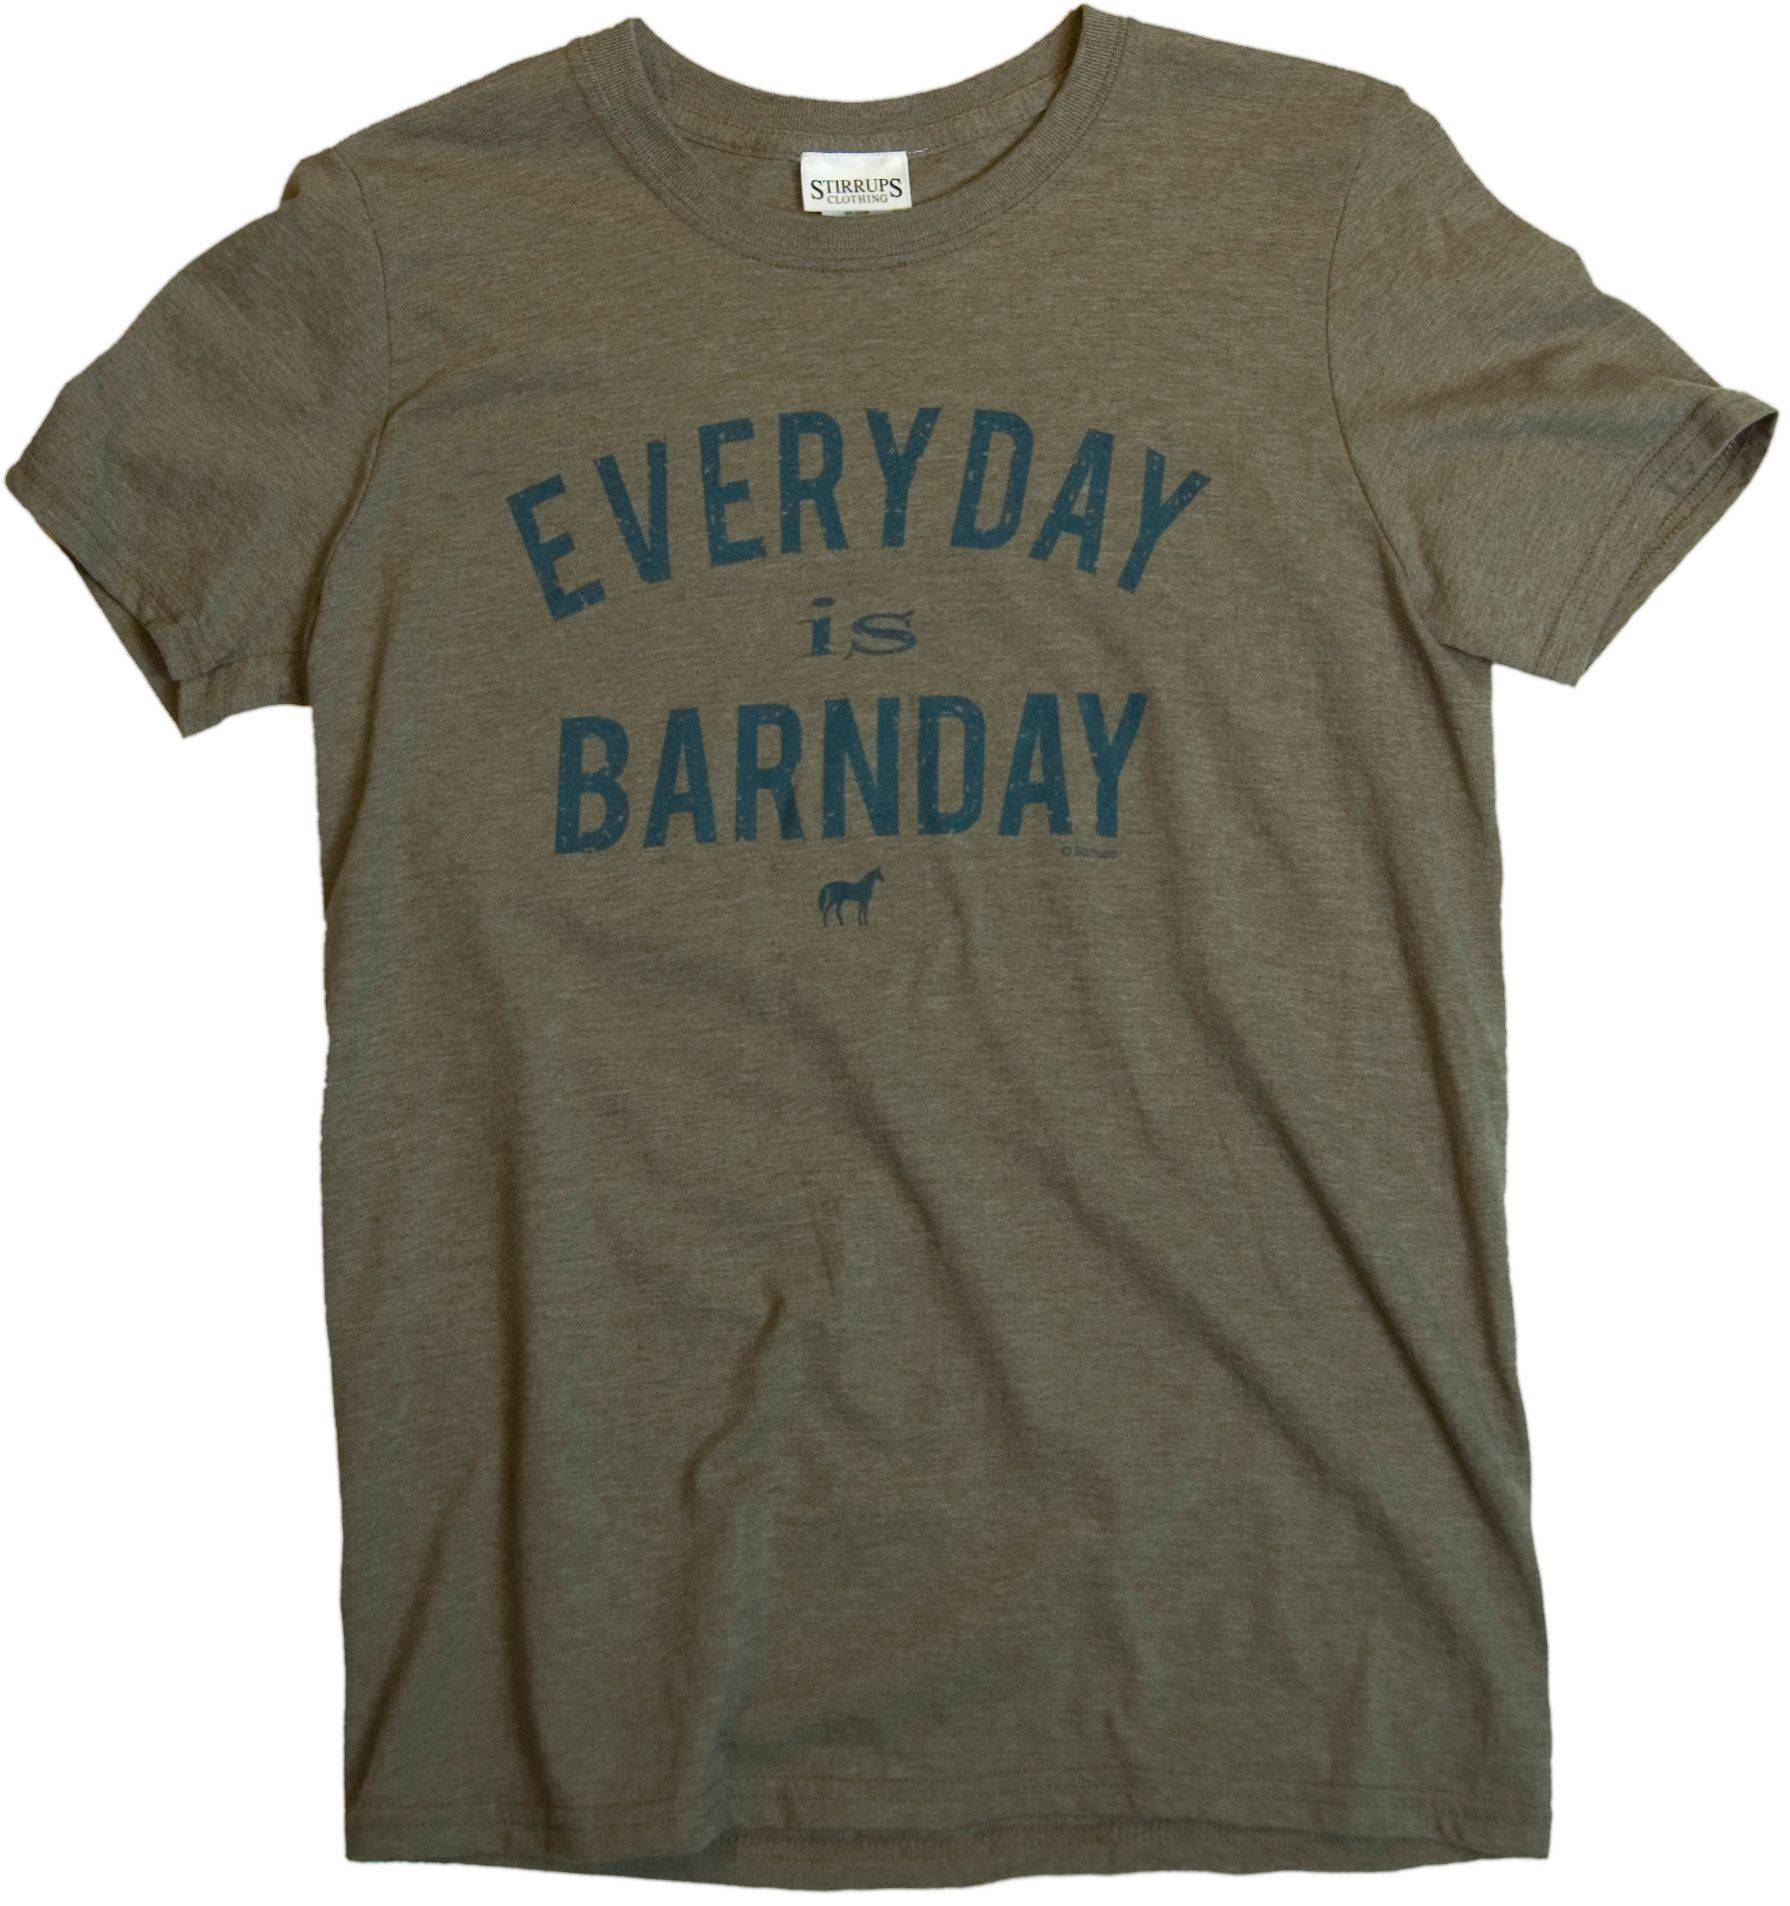 Stirrups Everyday Is Barnday Tee - Unisex